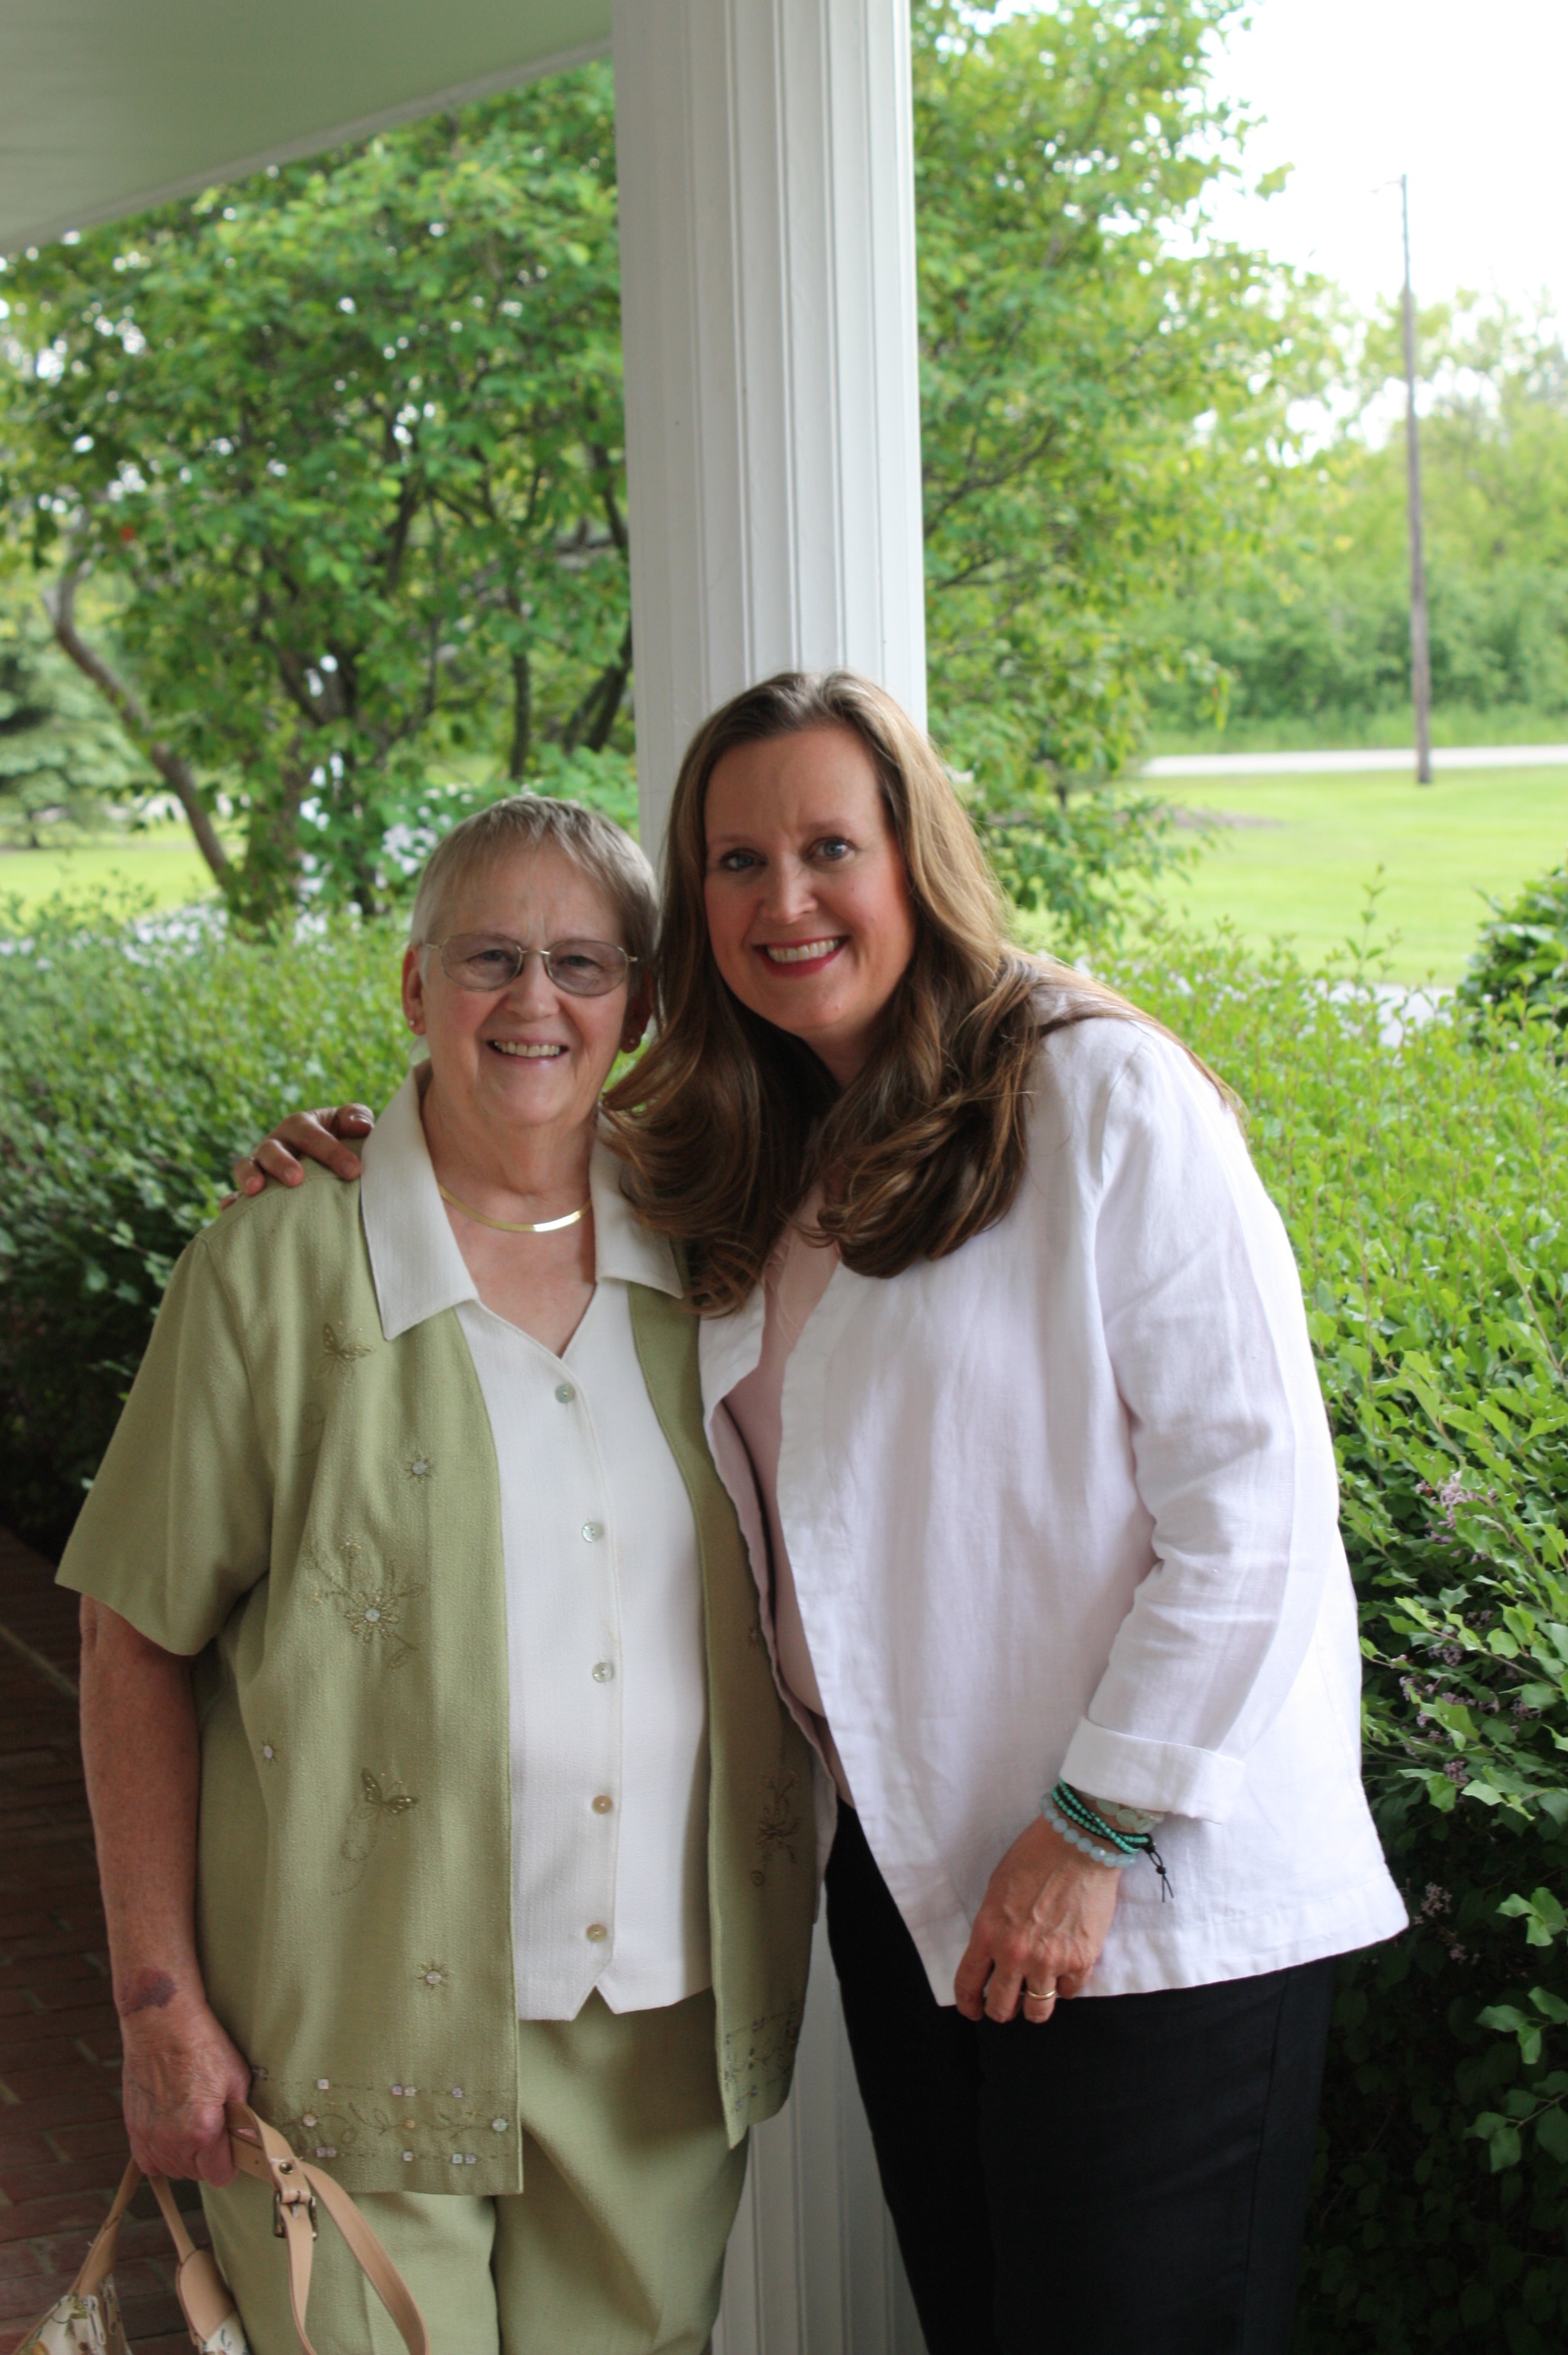 I'm pictured here with my mom, my very first teacher.